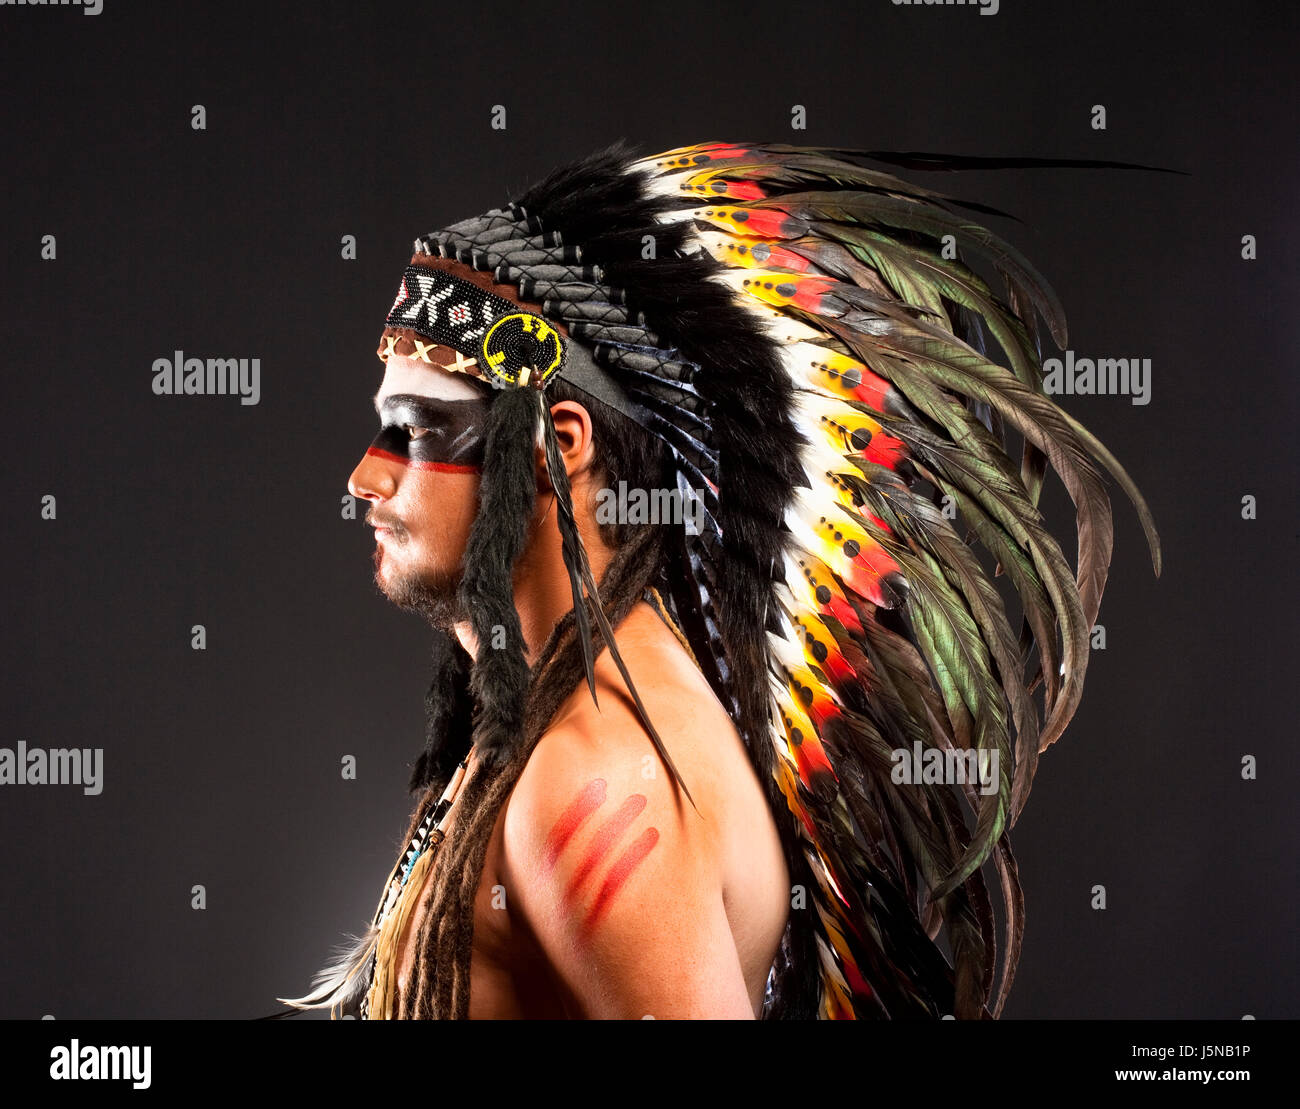 Native American Indian Chief War Bonner Headdress - Stock Image